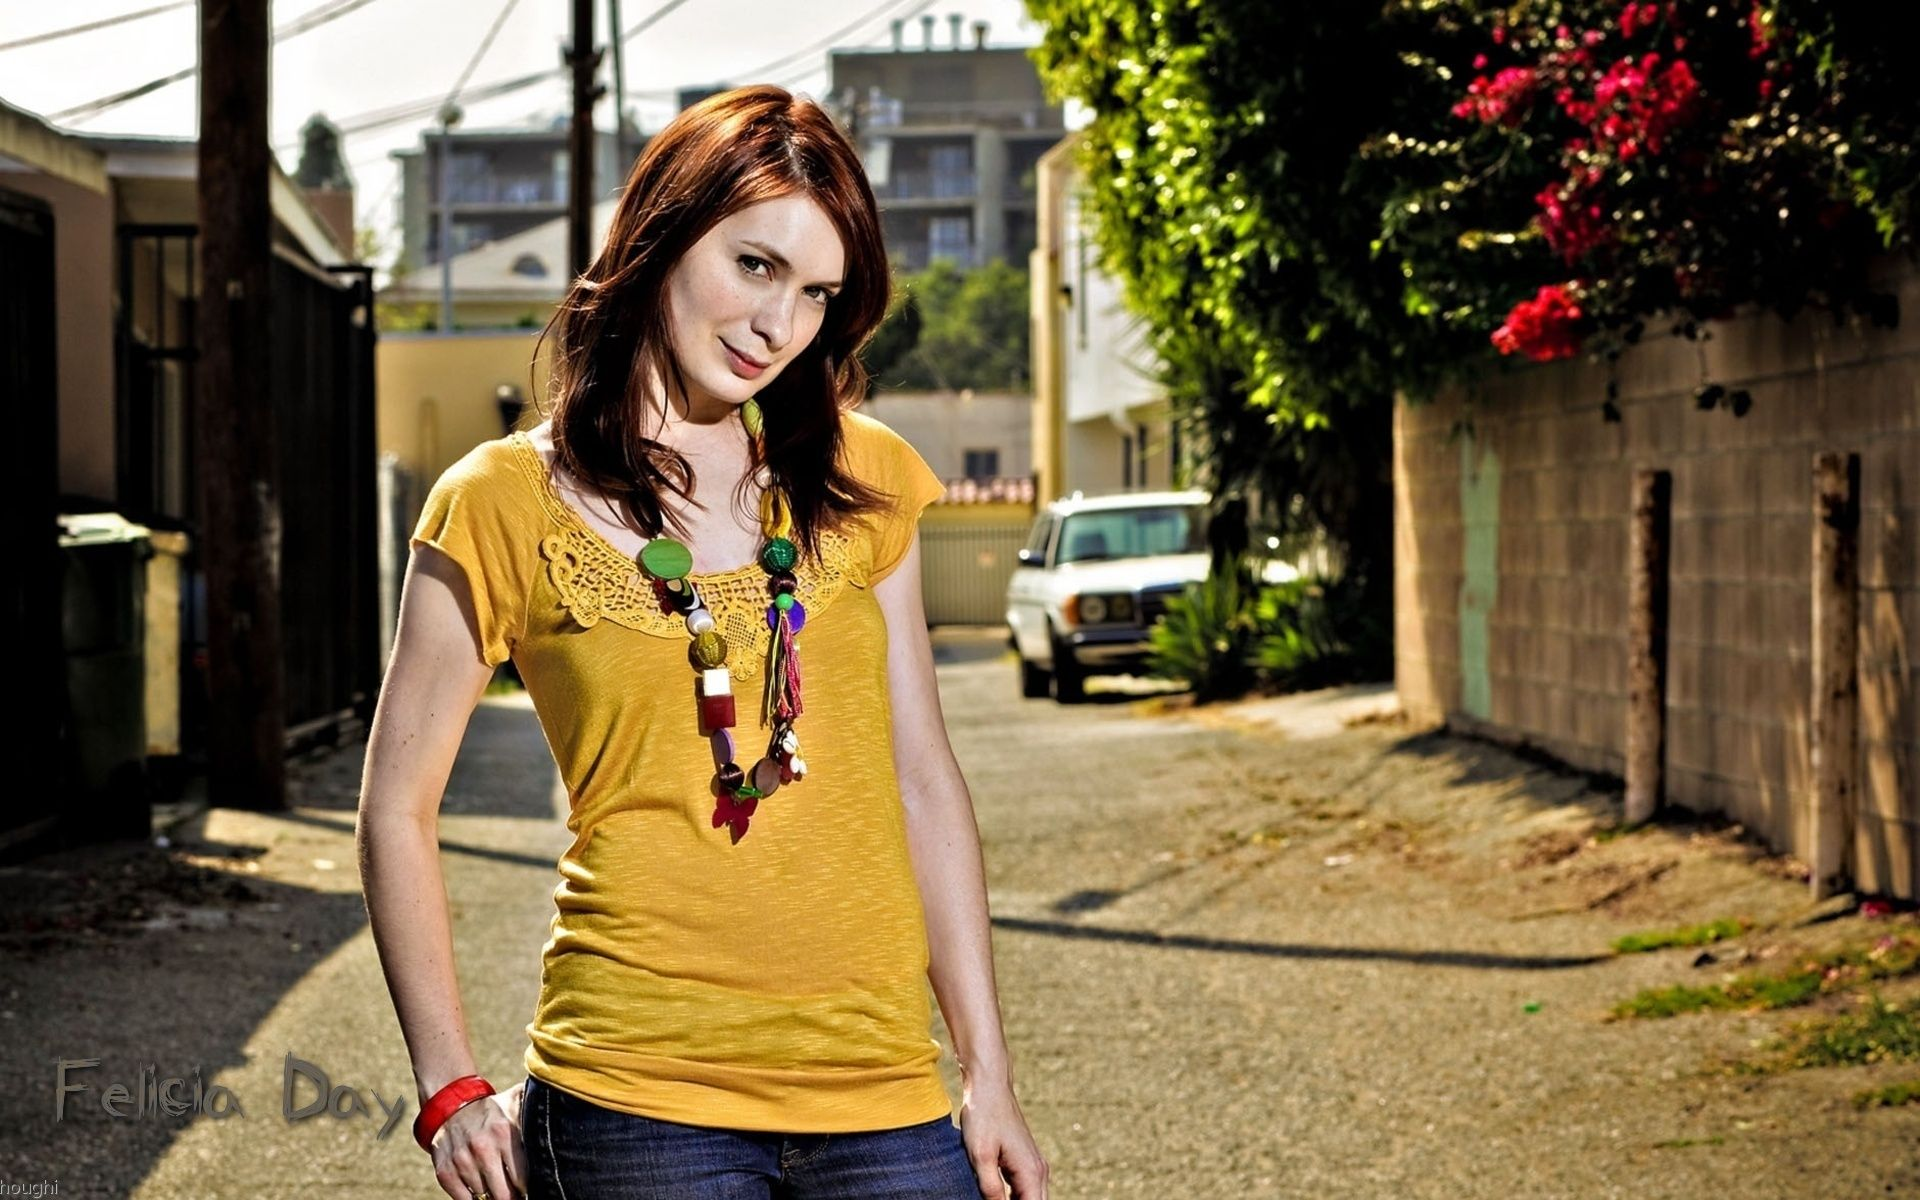 Felicia Day Cosplay